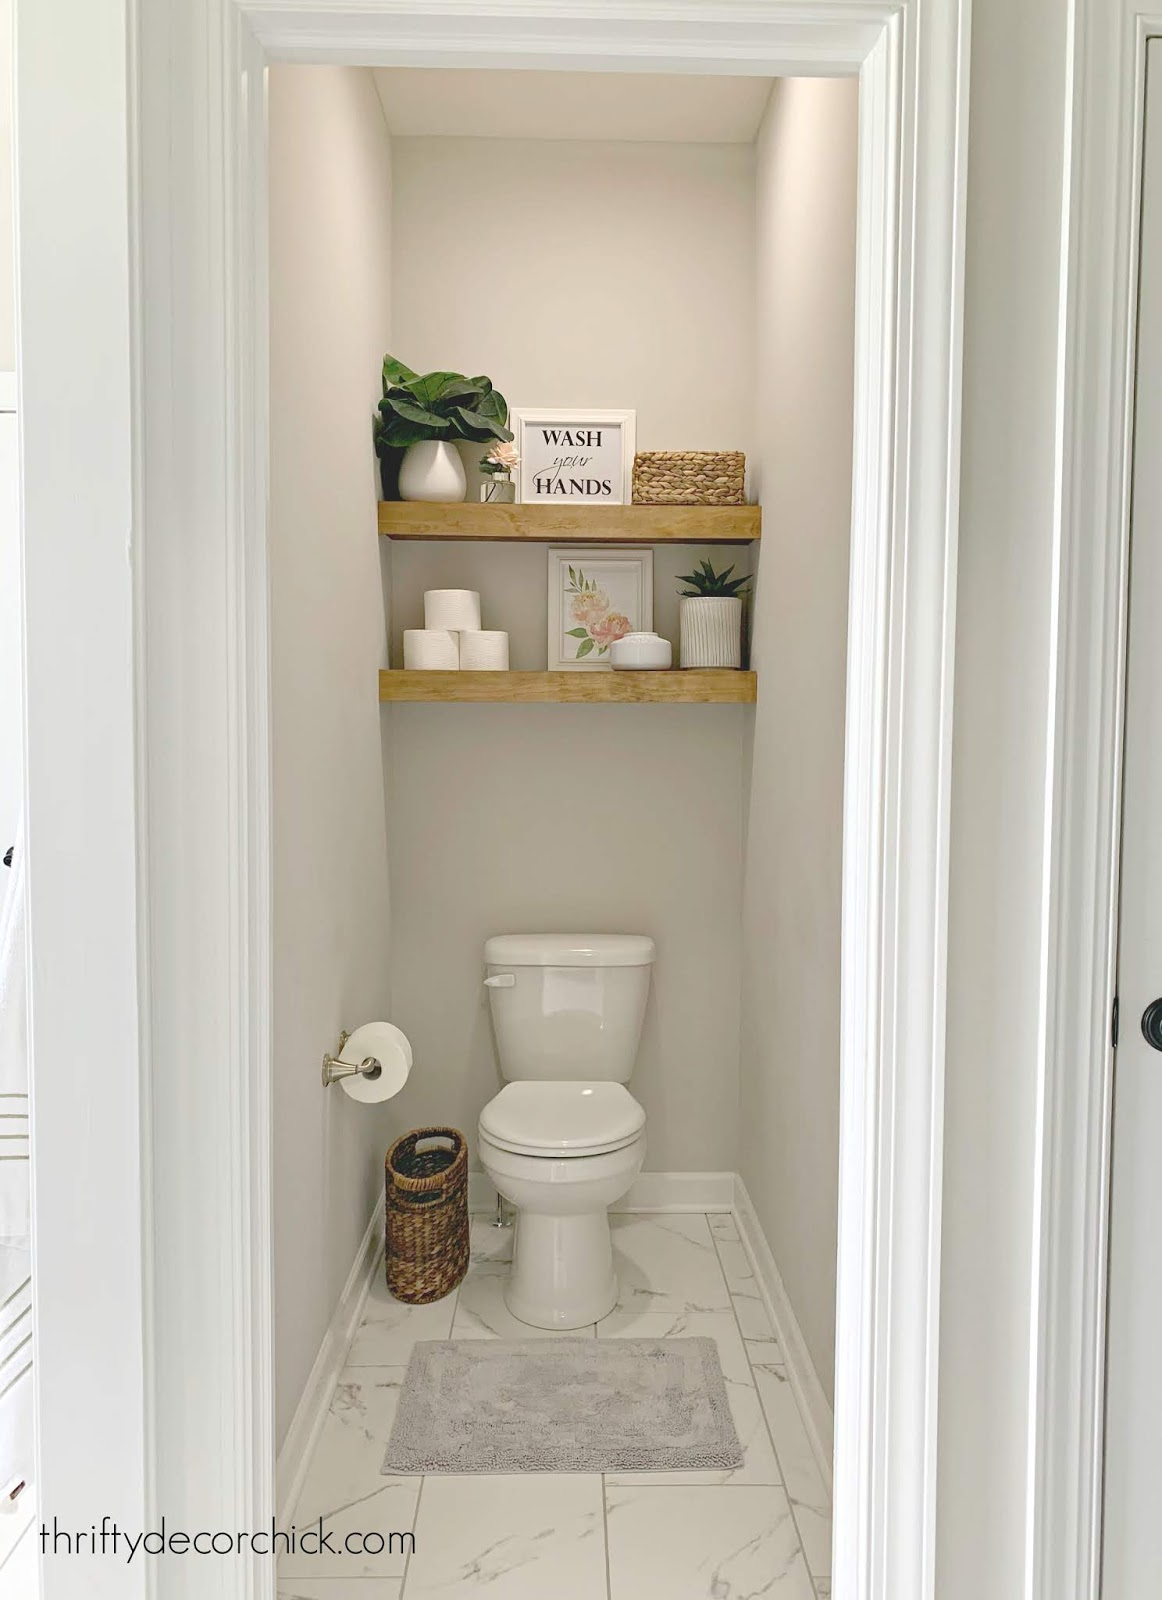 Wood shelves in small toilet space